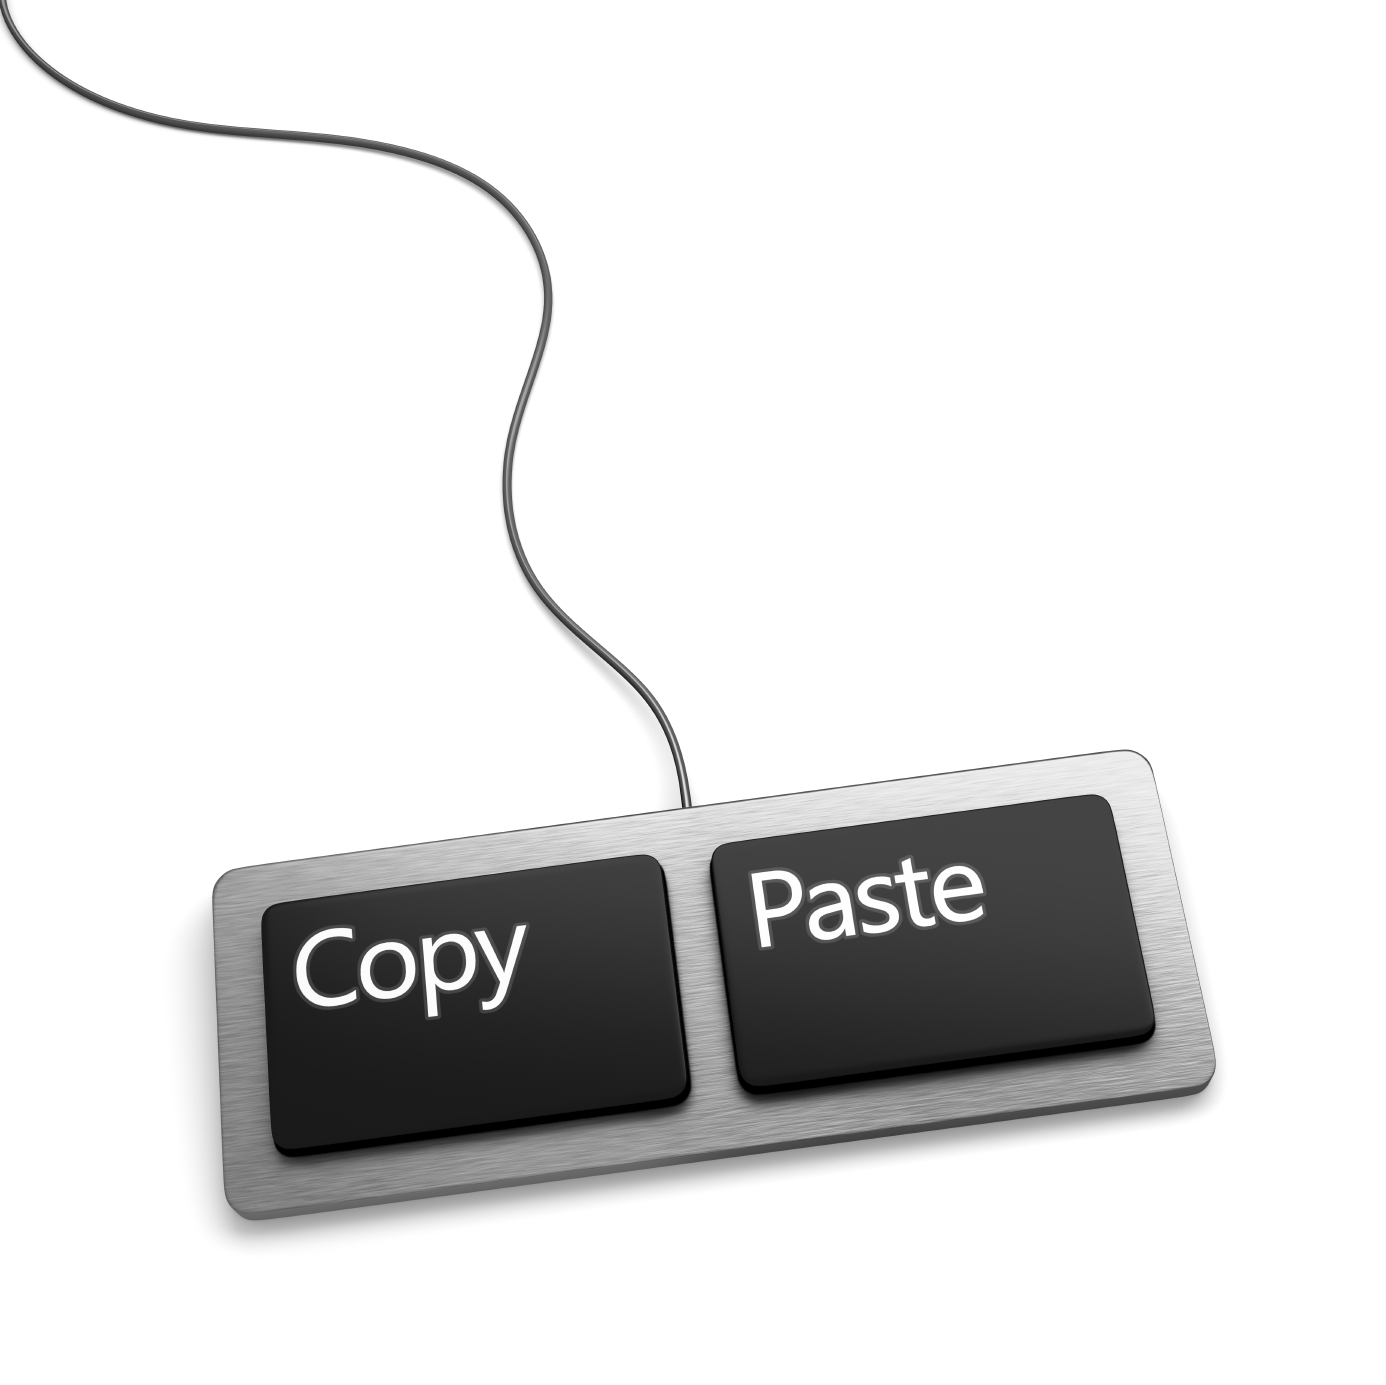 Turnitin Faces New Questions About Efficacy Of Plagiarism